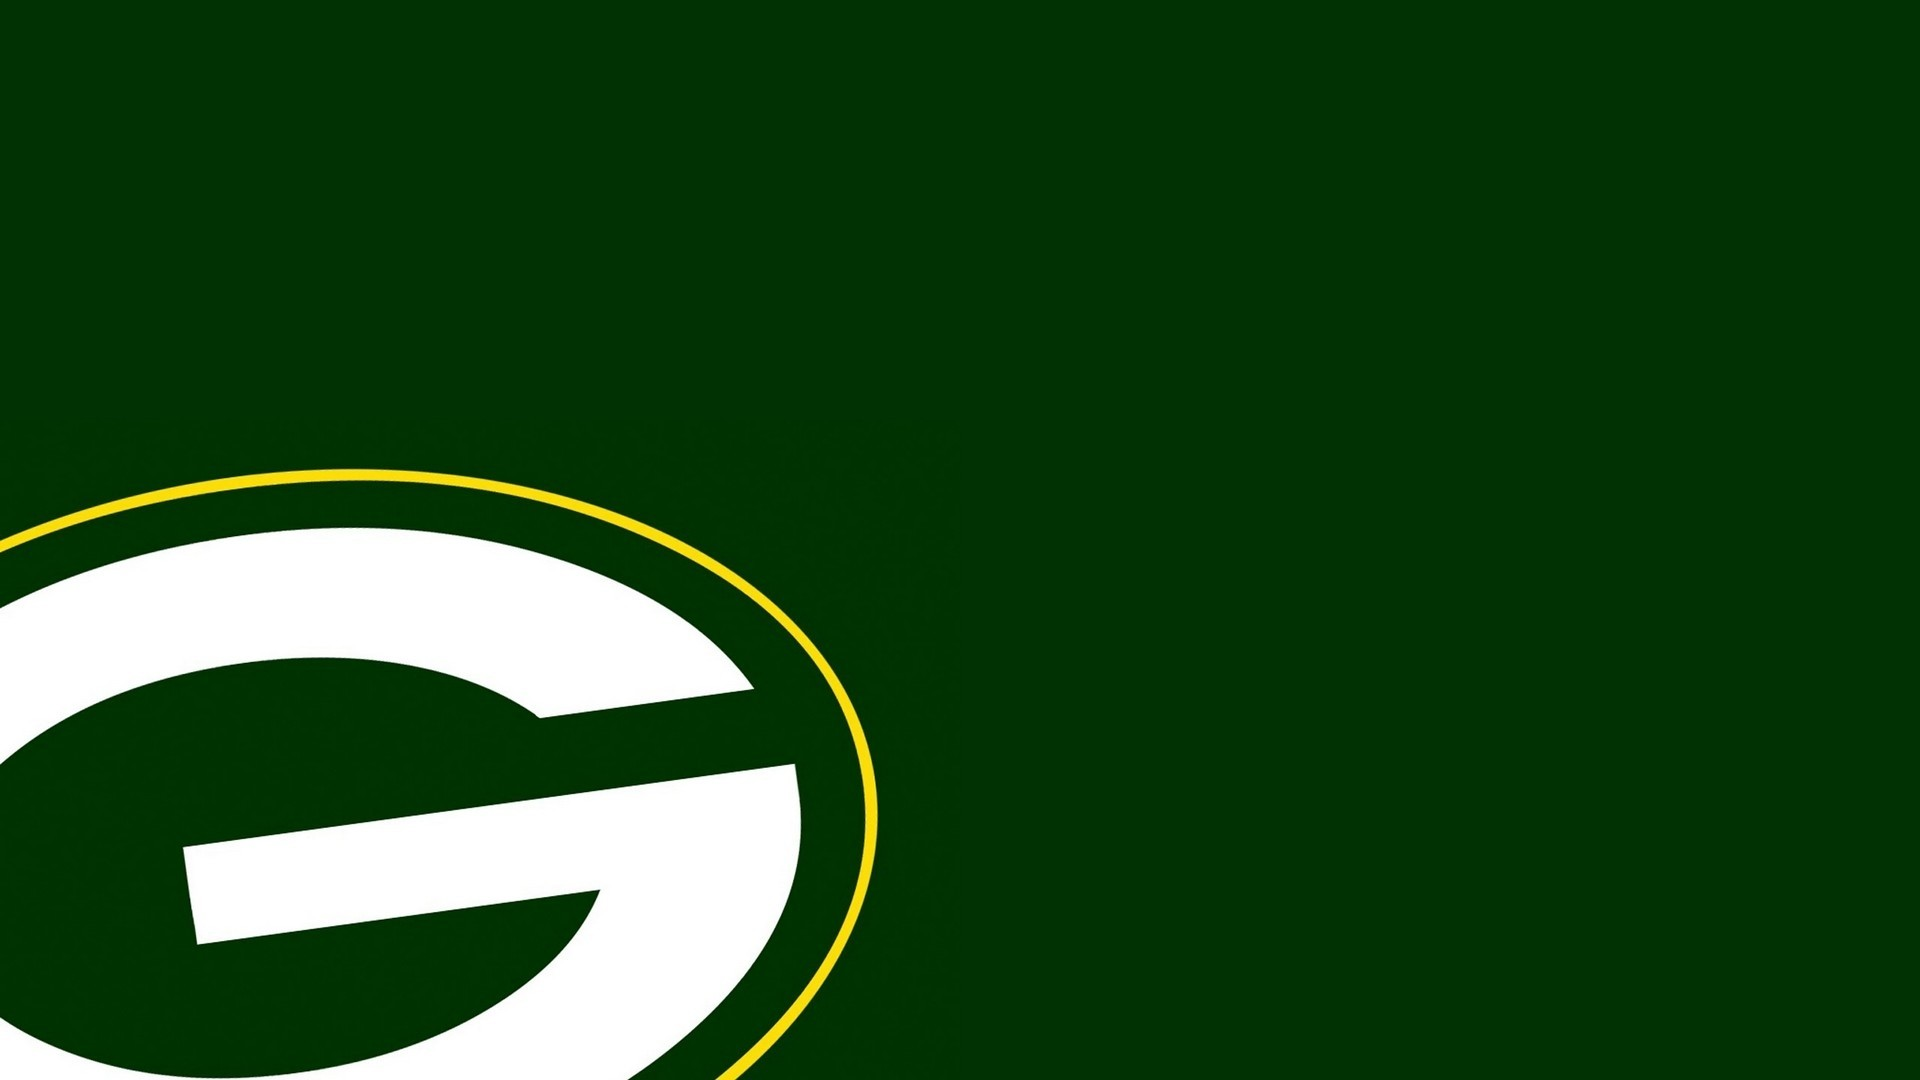 Green Bay Packers Free Wallpaper and Background